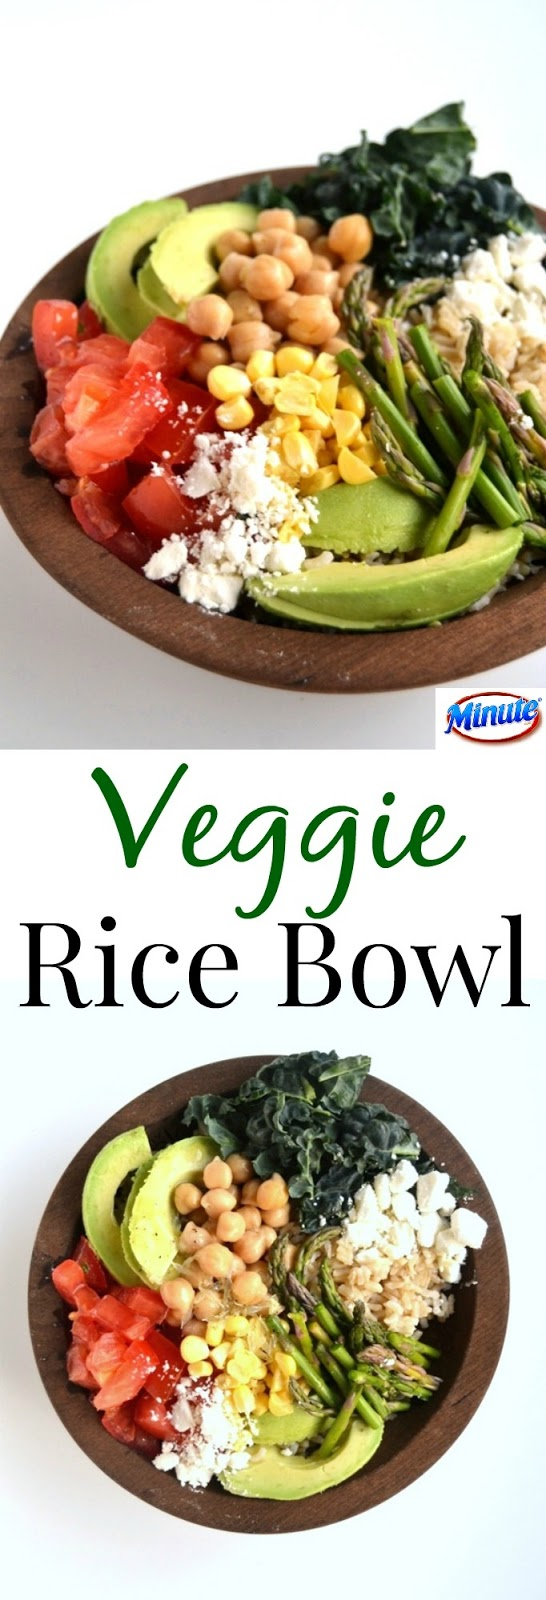 This Veggie Rice Bowl is a hearty and healthy dish that is ready in 20 minutes or less. Packed full of fresh vegetables and topped with a lemon vinaigrette. www.nutritionistreviews.com